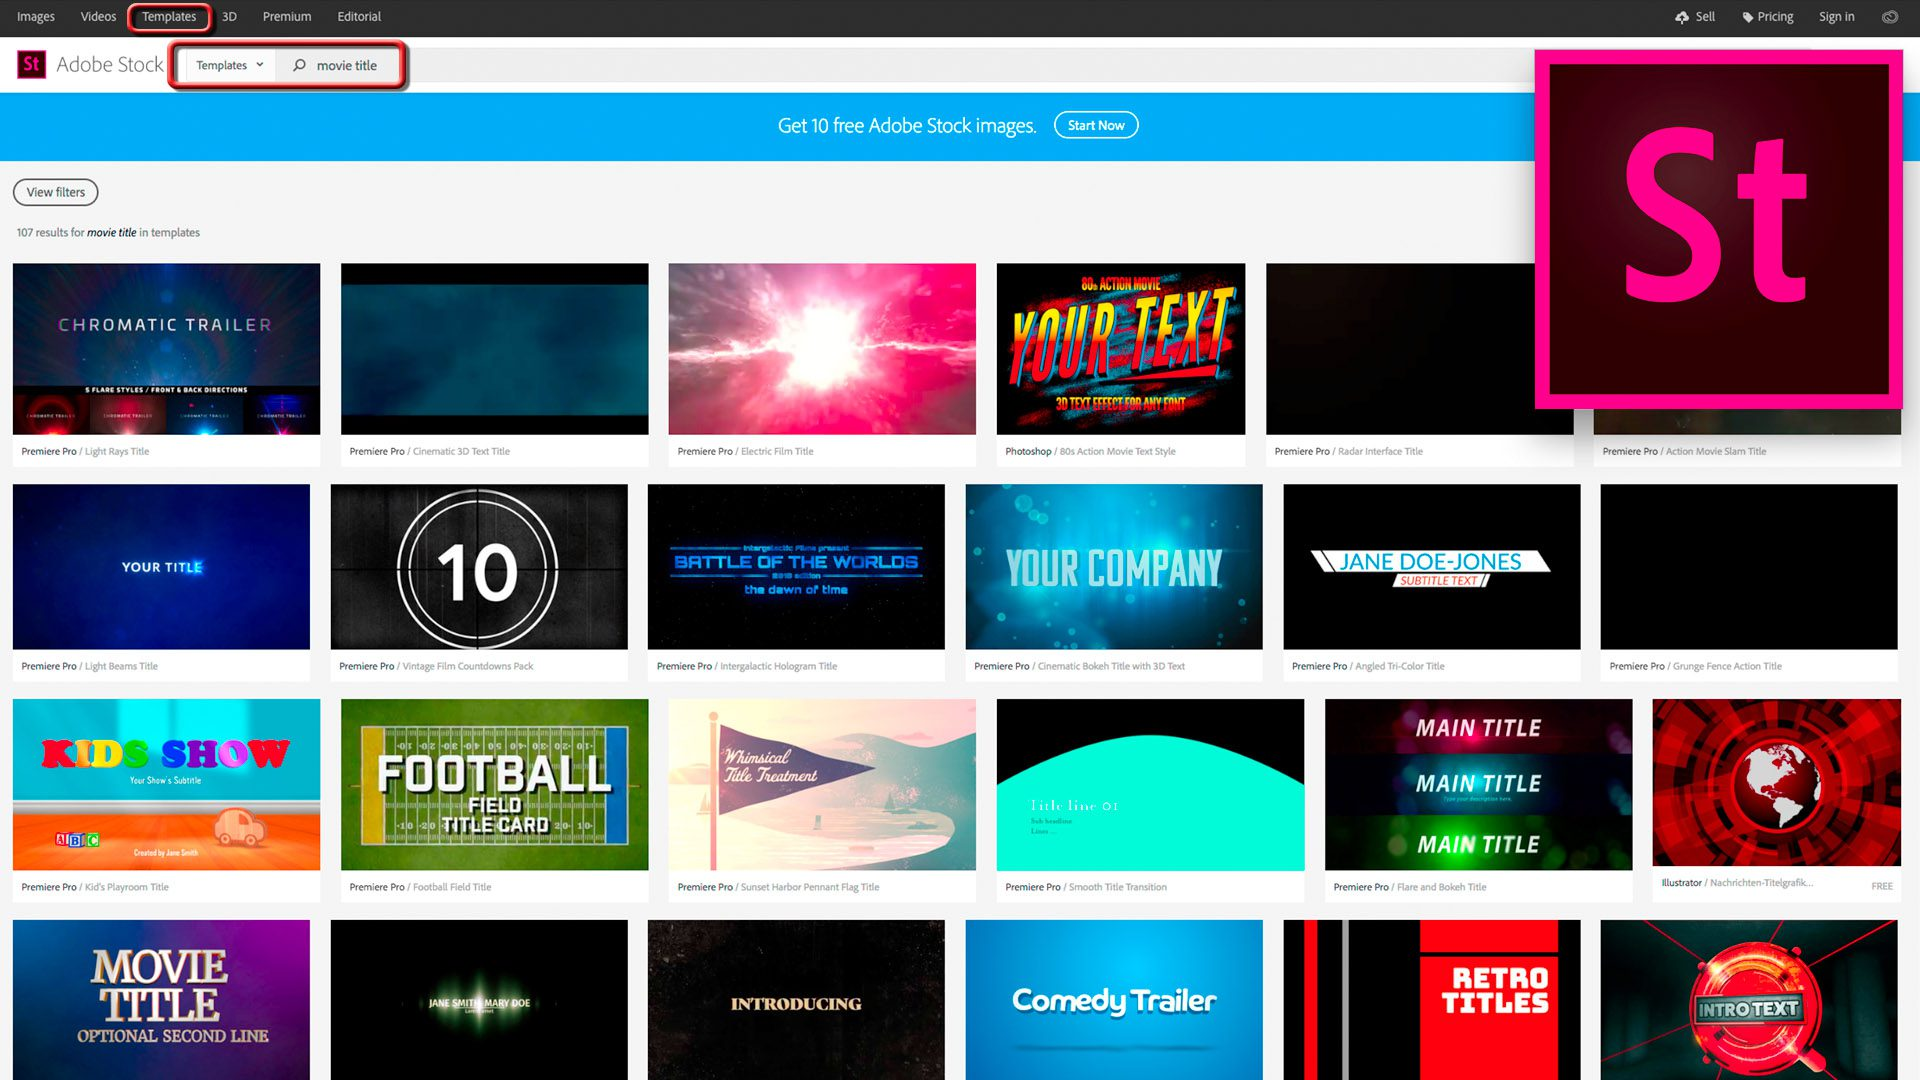 Motion Graphics Templates a.k.a. MOGRTs are on Adobe Stock in both free and paid downloads